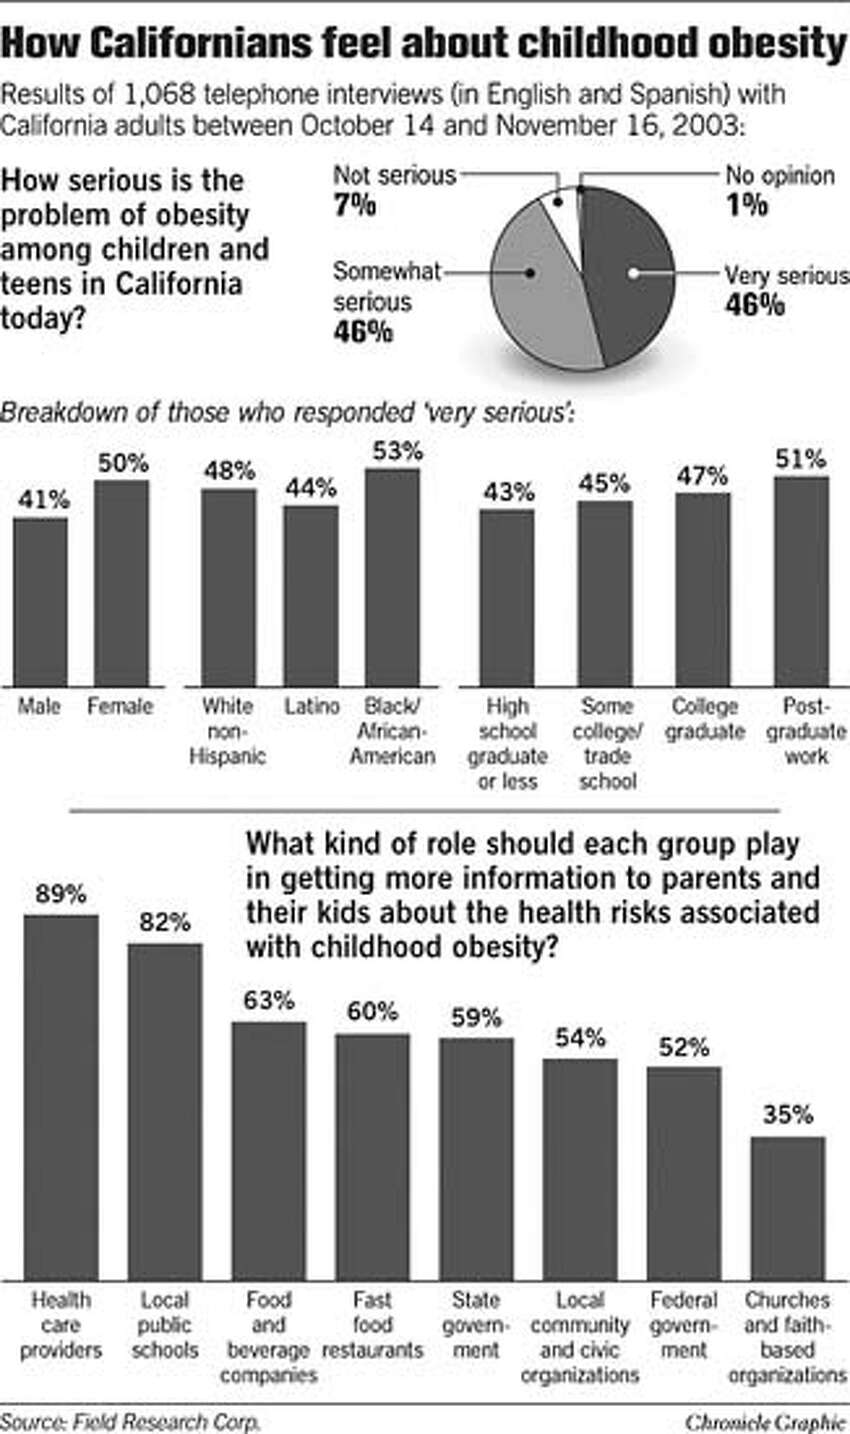 How Californians Feel About Childhood Obesity. Chronicle Graphic